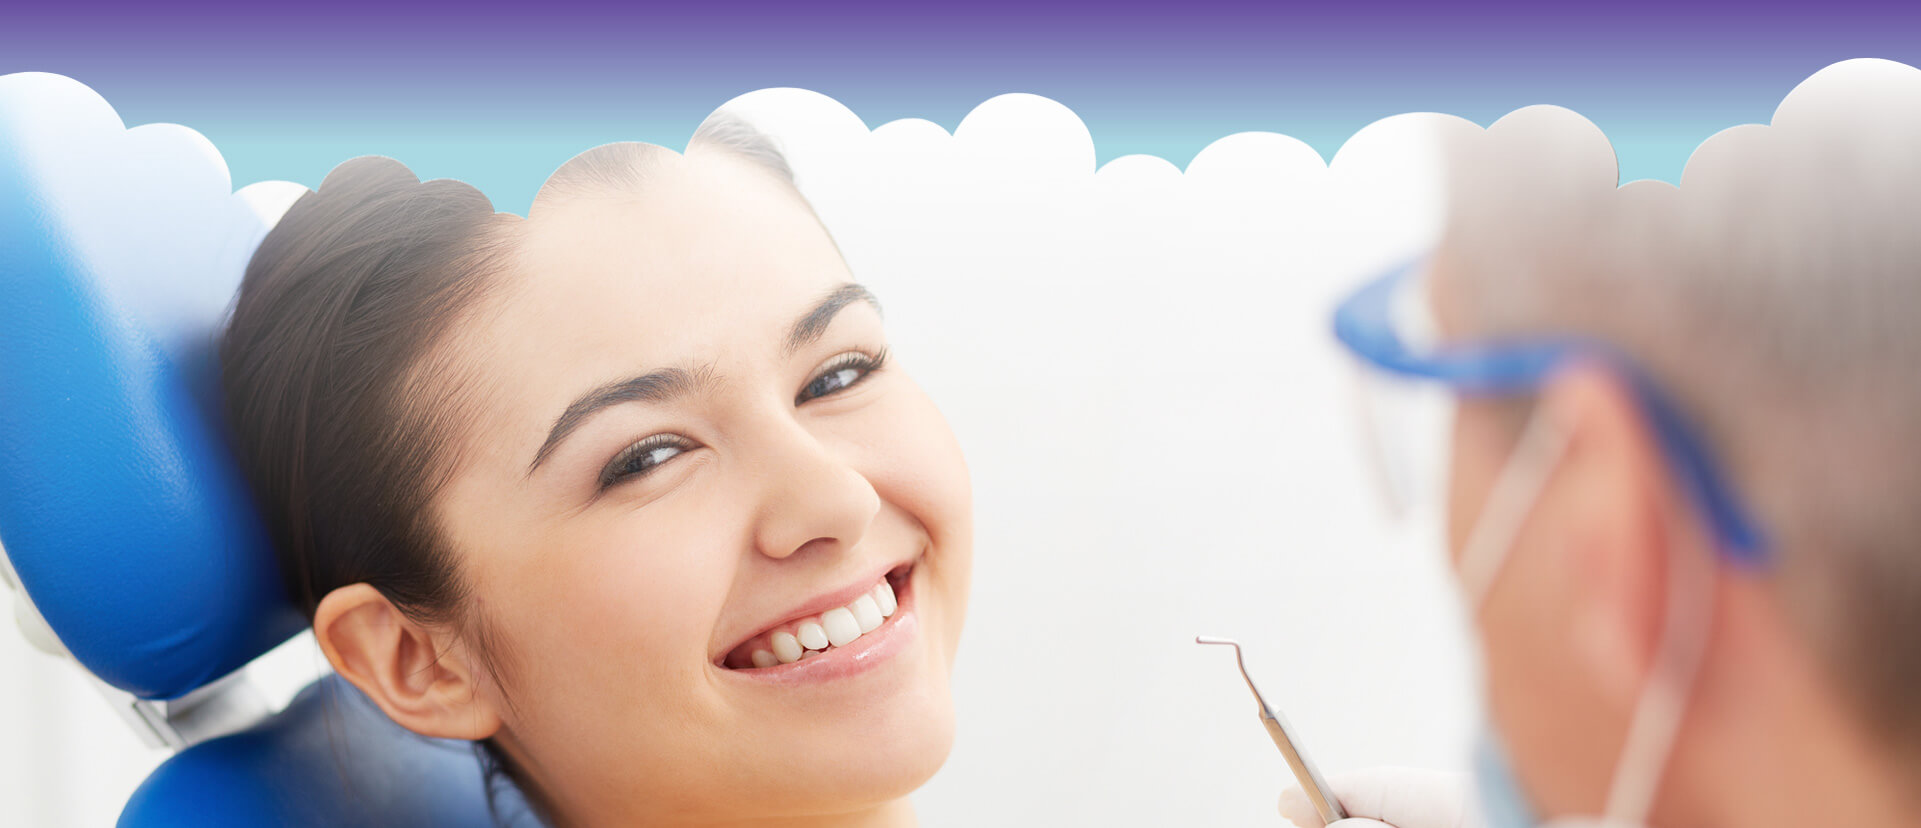 Young woman smiling about to receive dental cleaning treatment